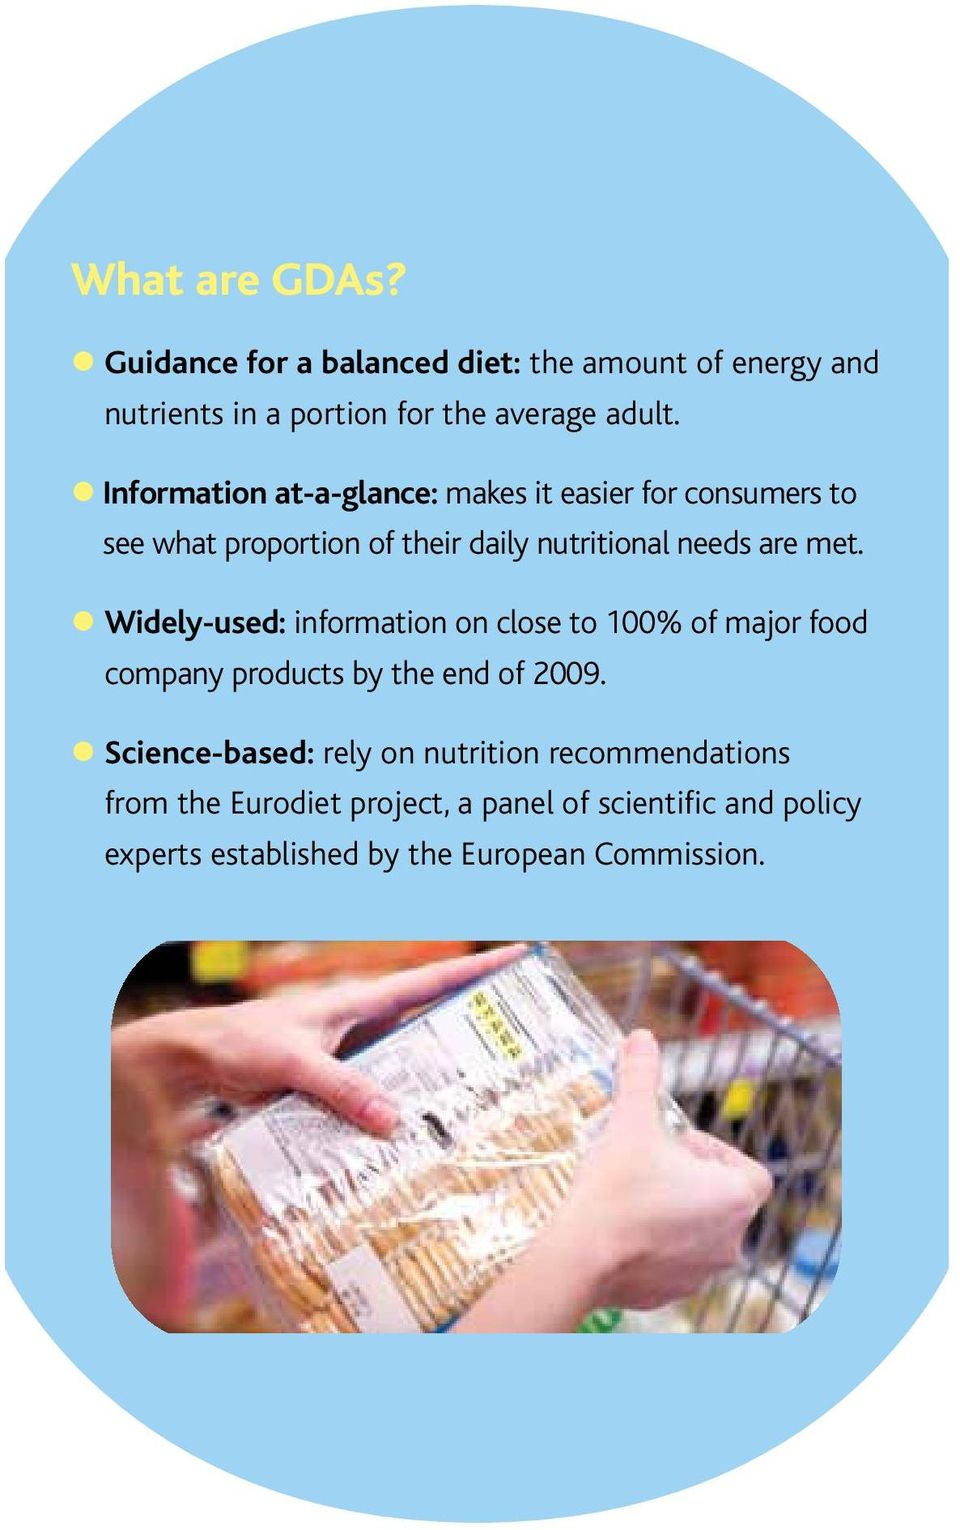 Widely-used: information on close to 100% of major food company products by the end of 2009.